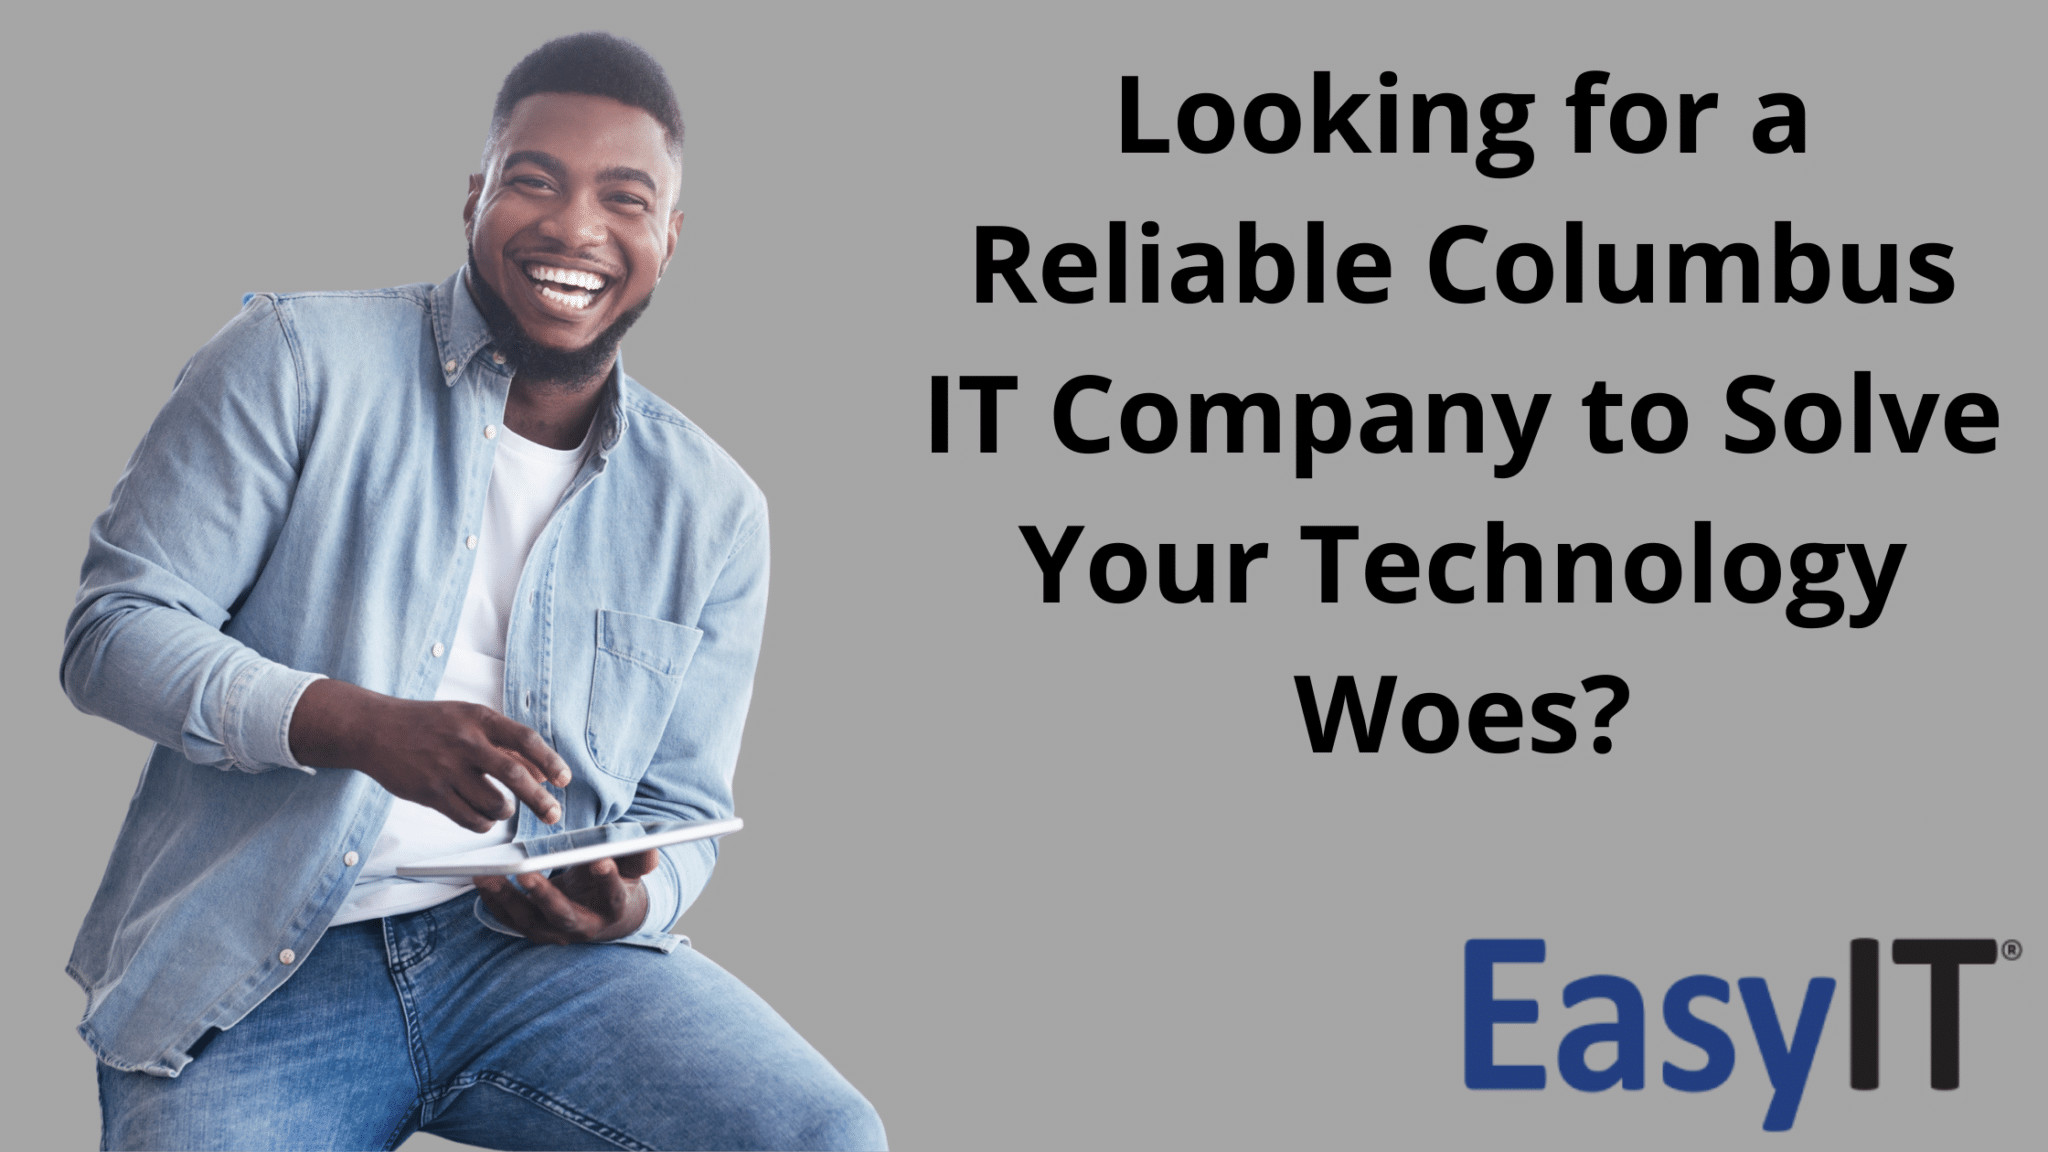 Looking for a Reliable Columbus, OH IT Company to Solve Your Technology Woes?